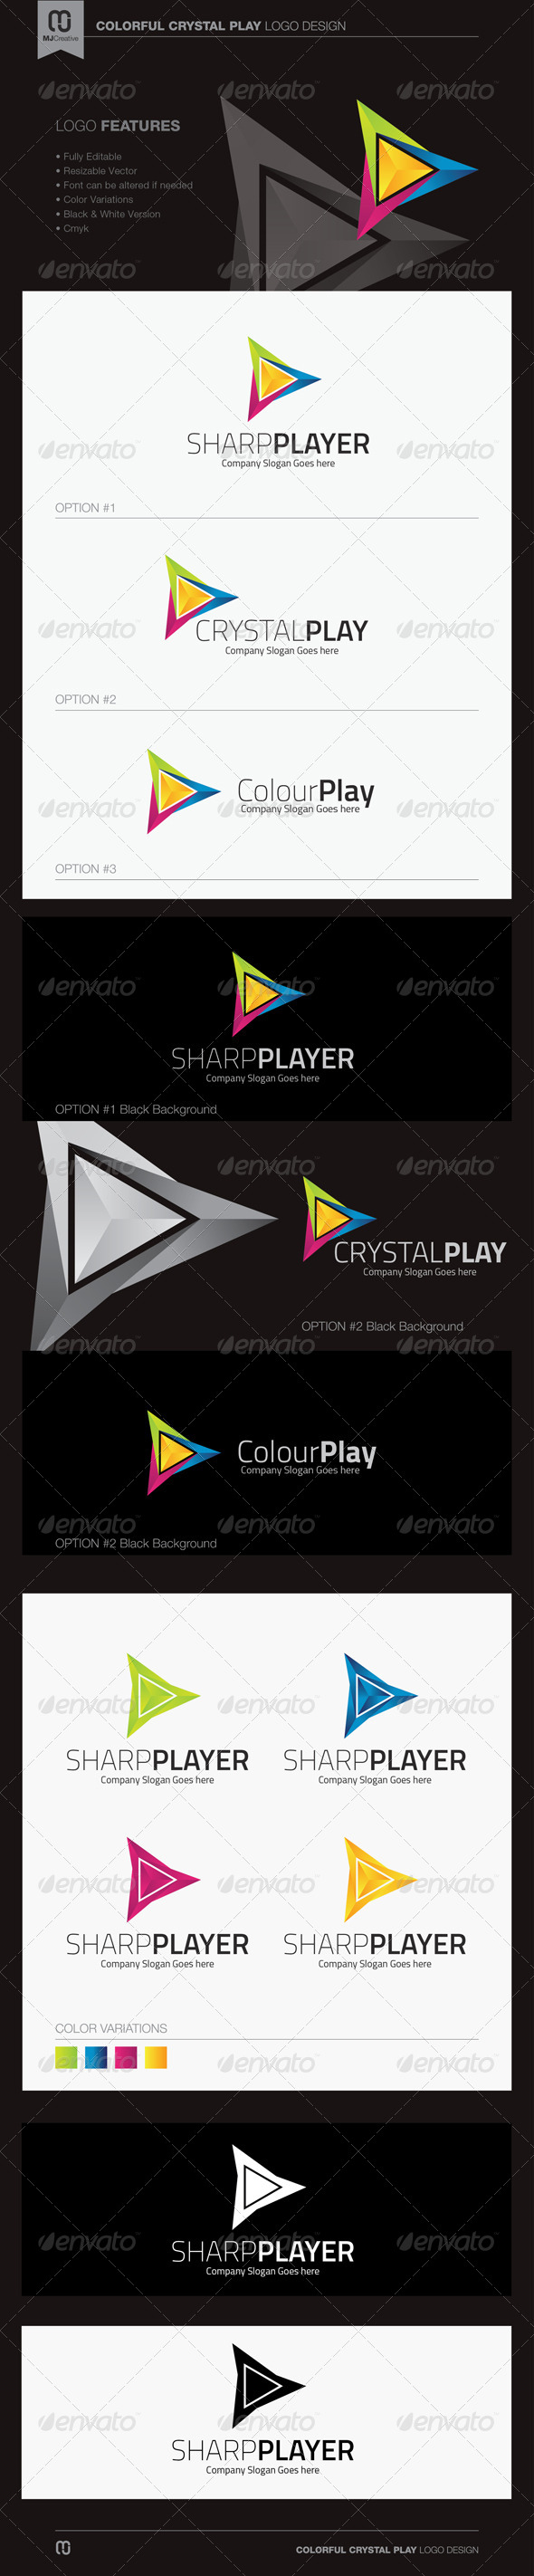 Colorful Crystal Play Logo - Vector Abstract